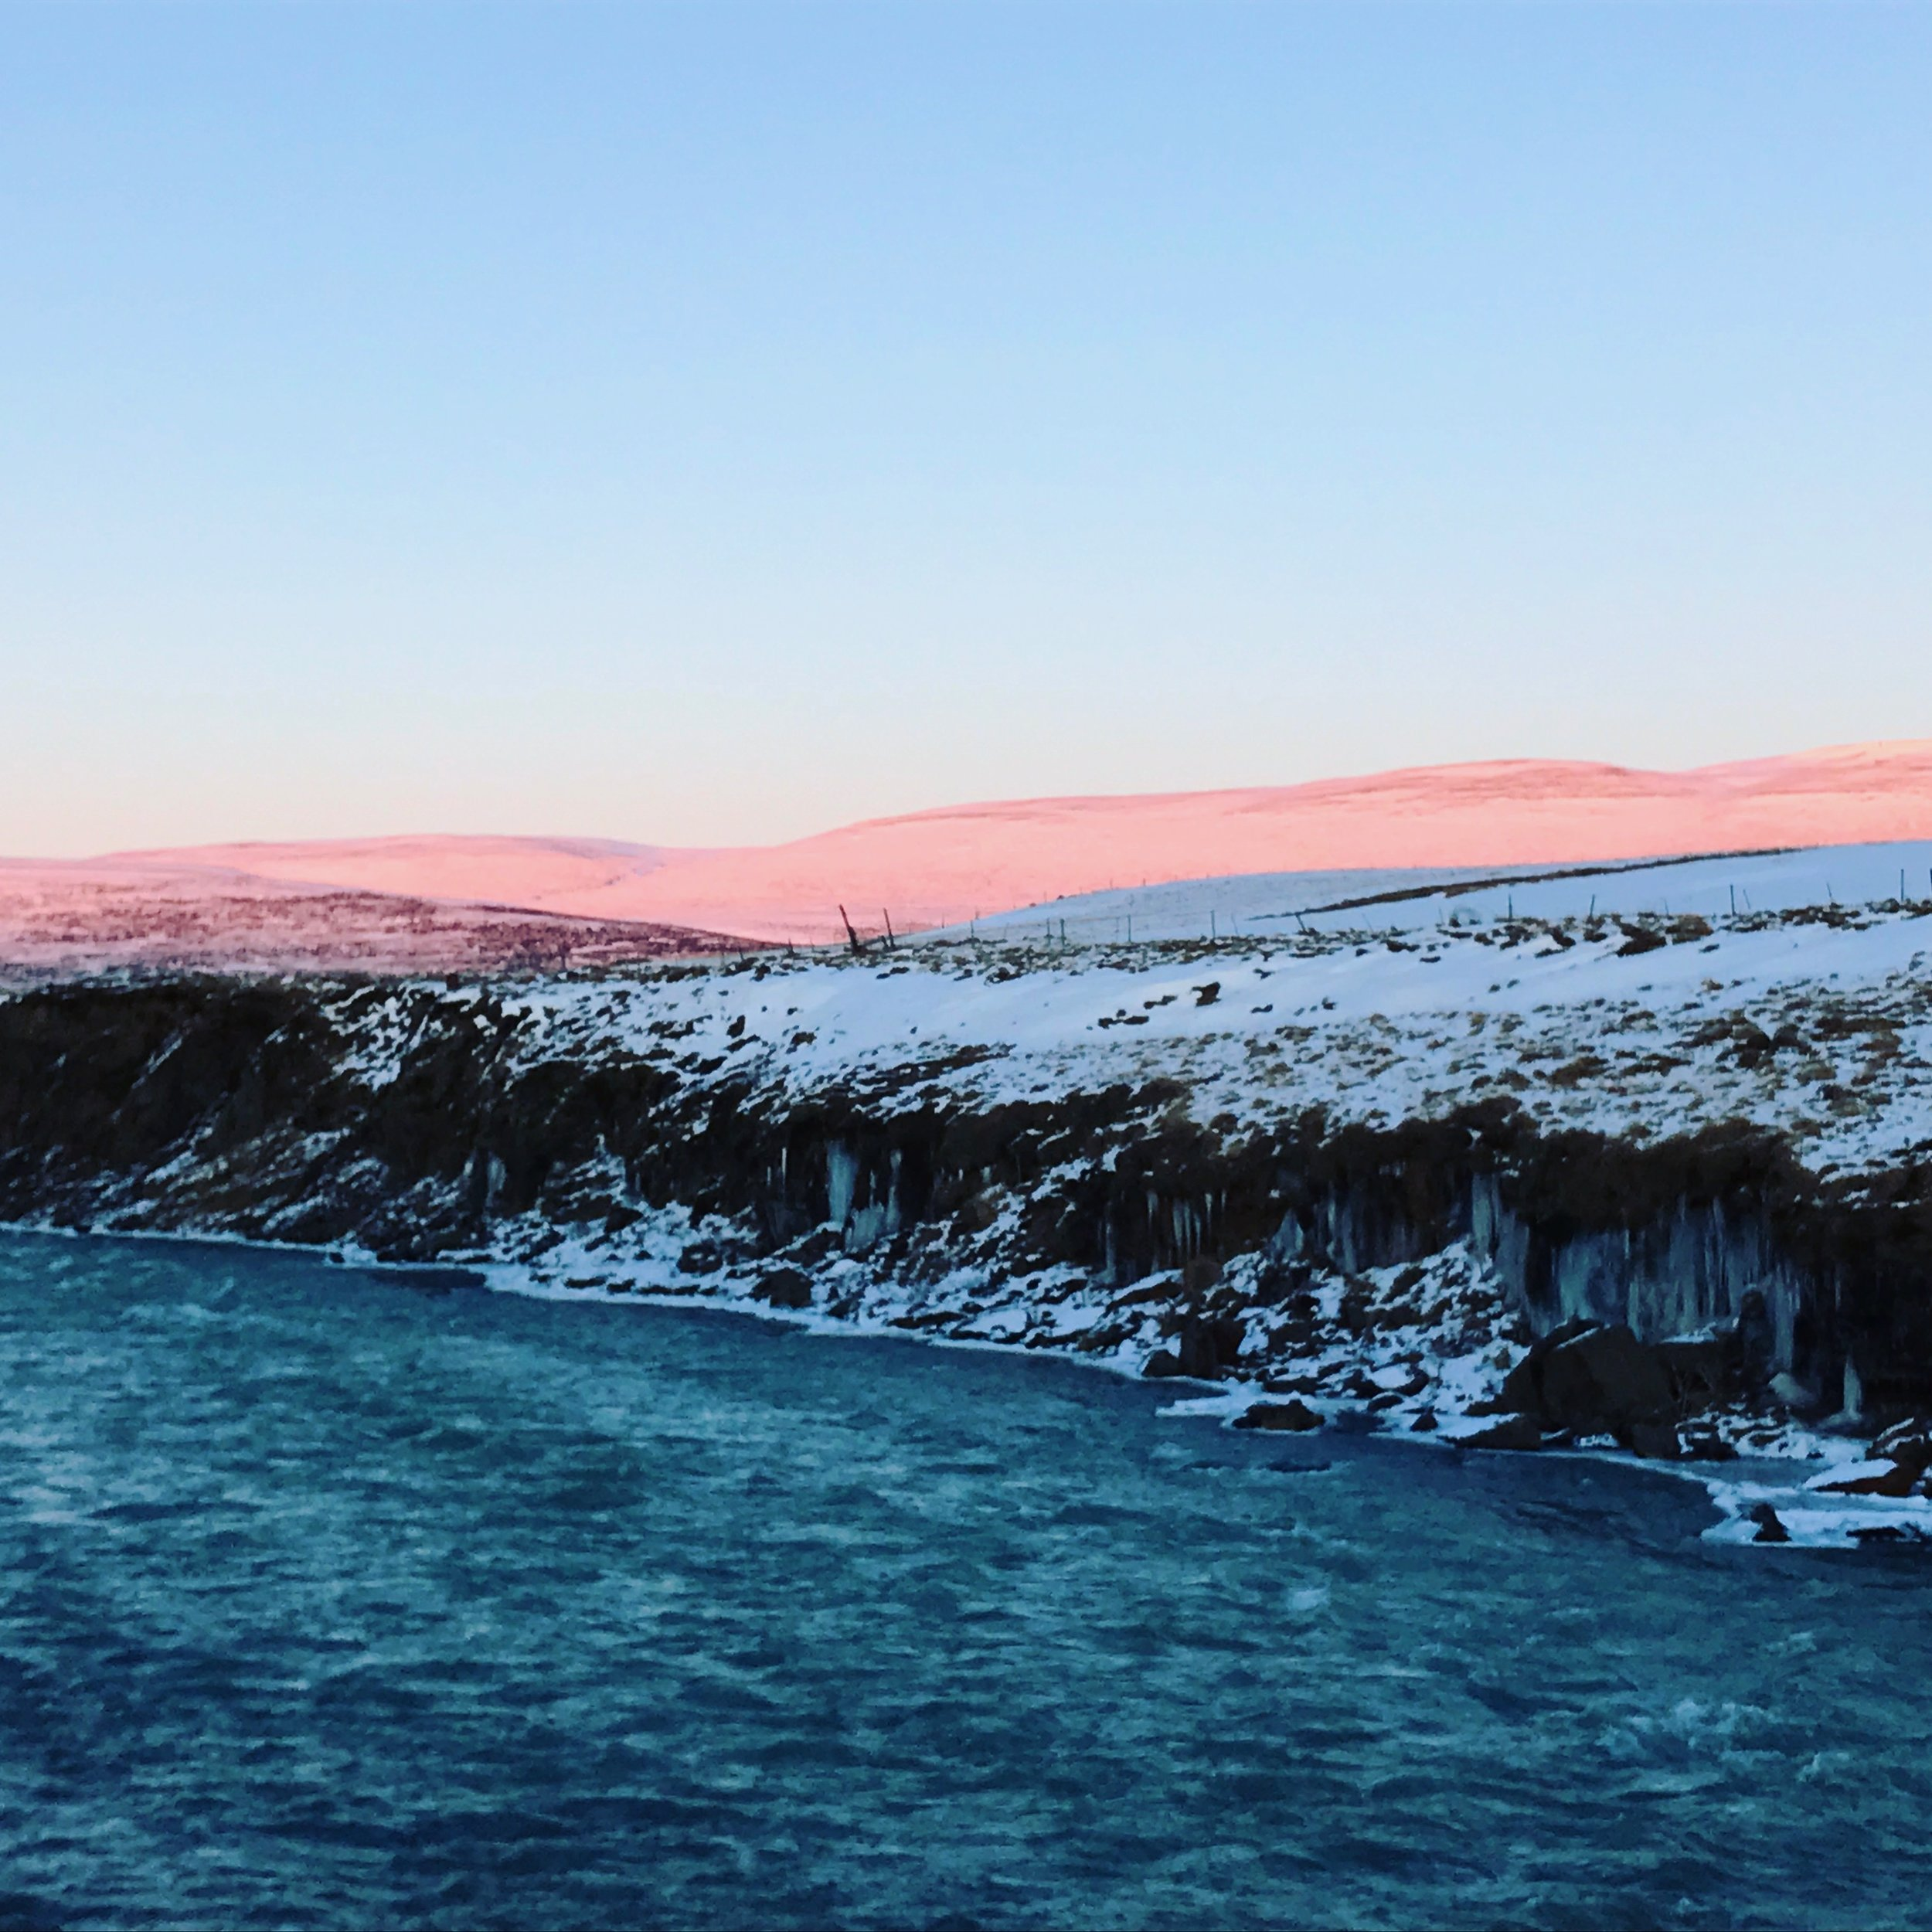 The mountains turn a beautiful pink as the sun begins to set, view from Hrútey Island.